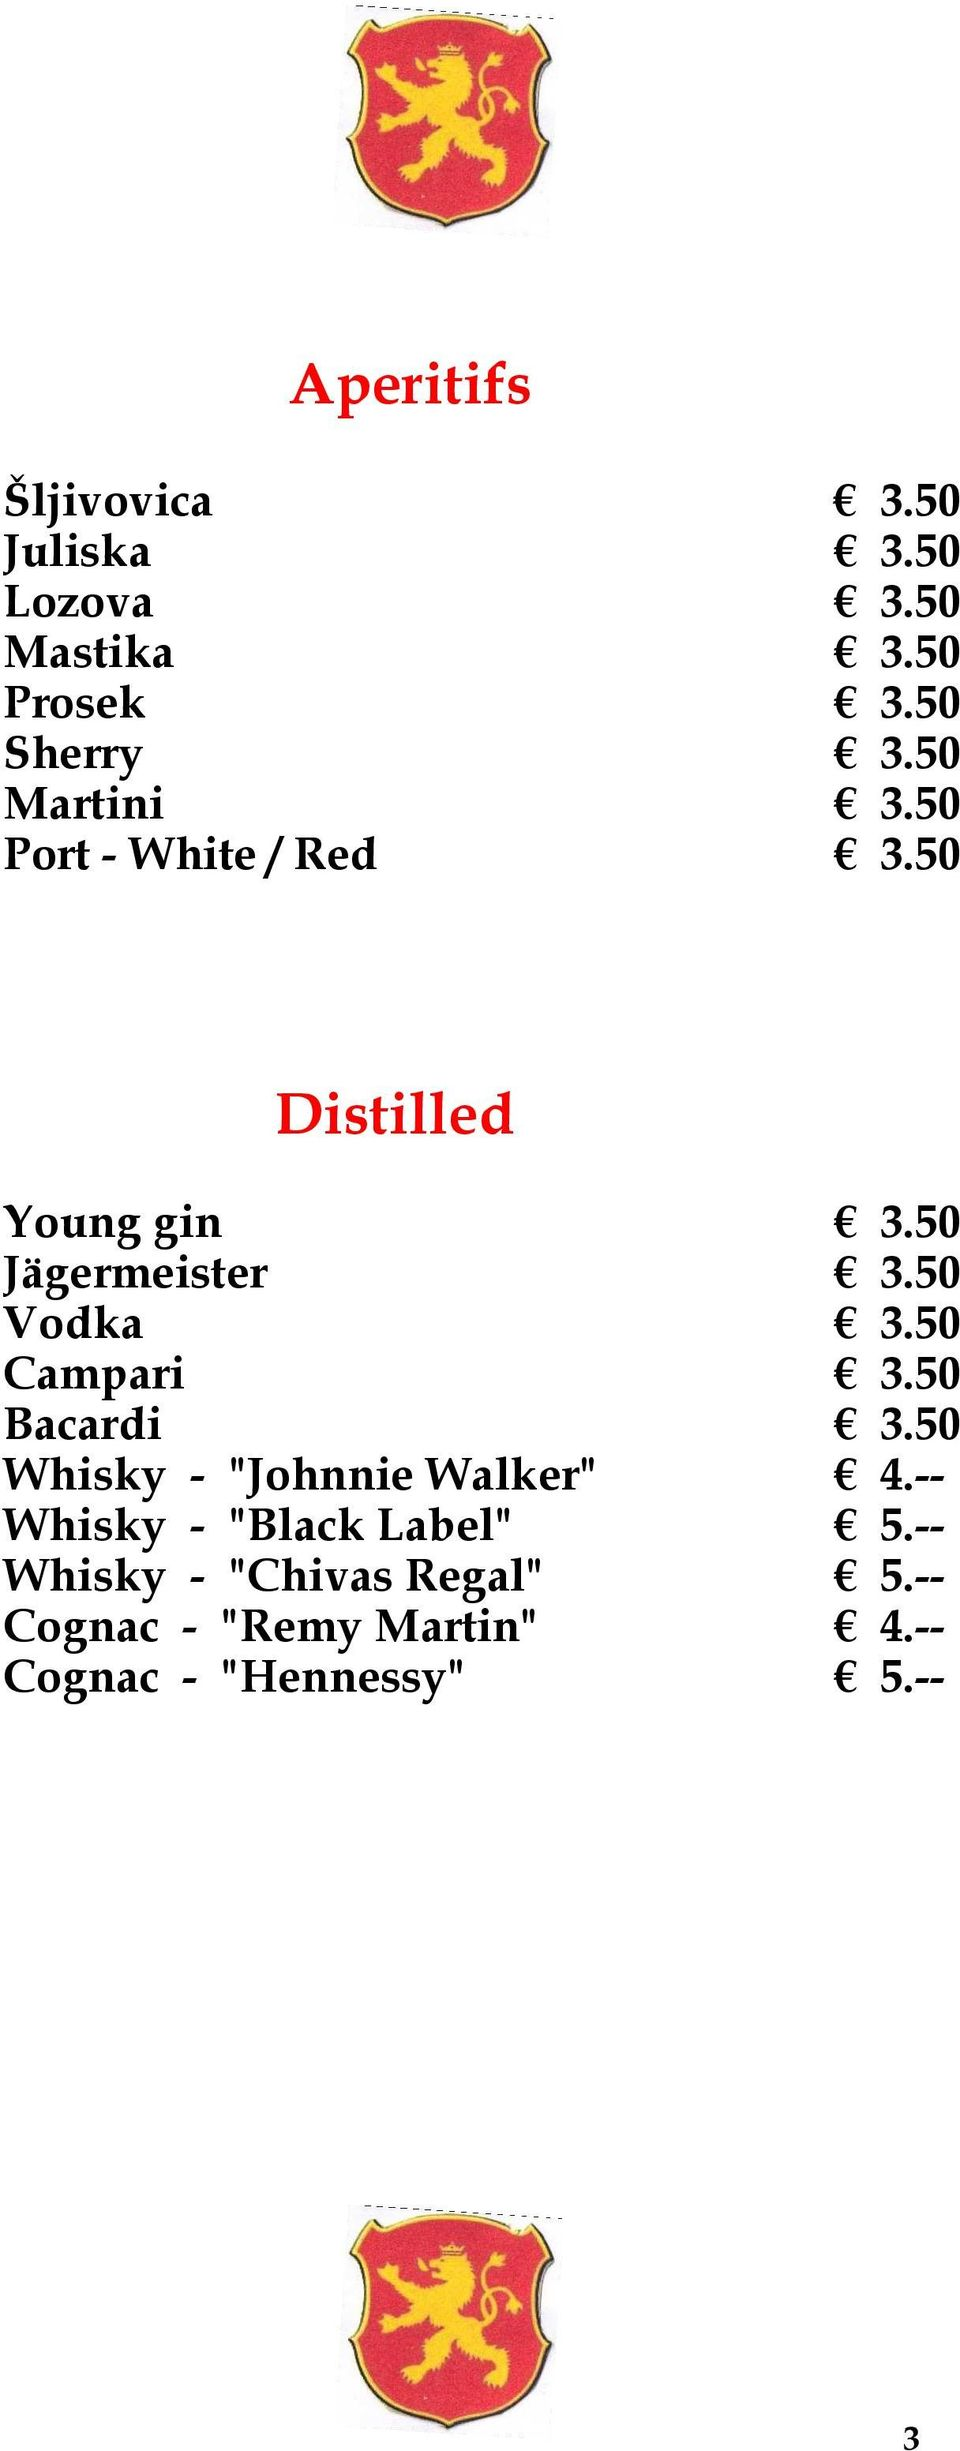 "50 Vodka 3.50 Campari 3.50 Bacardi 3.50 Whisky - ""Johnnie Walker"" 4."